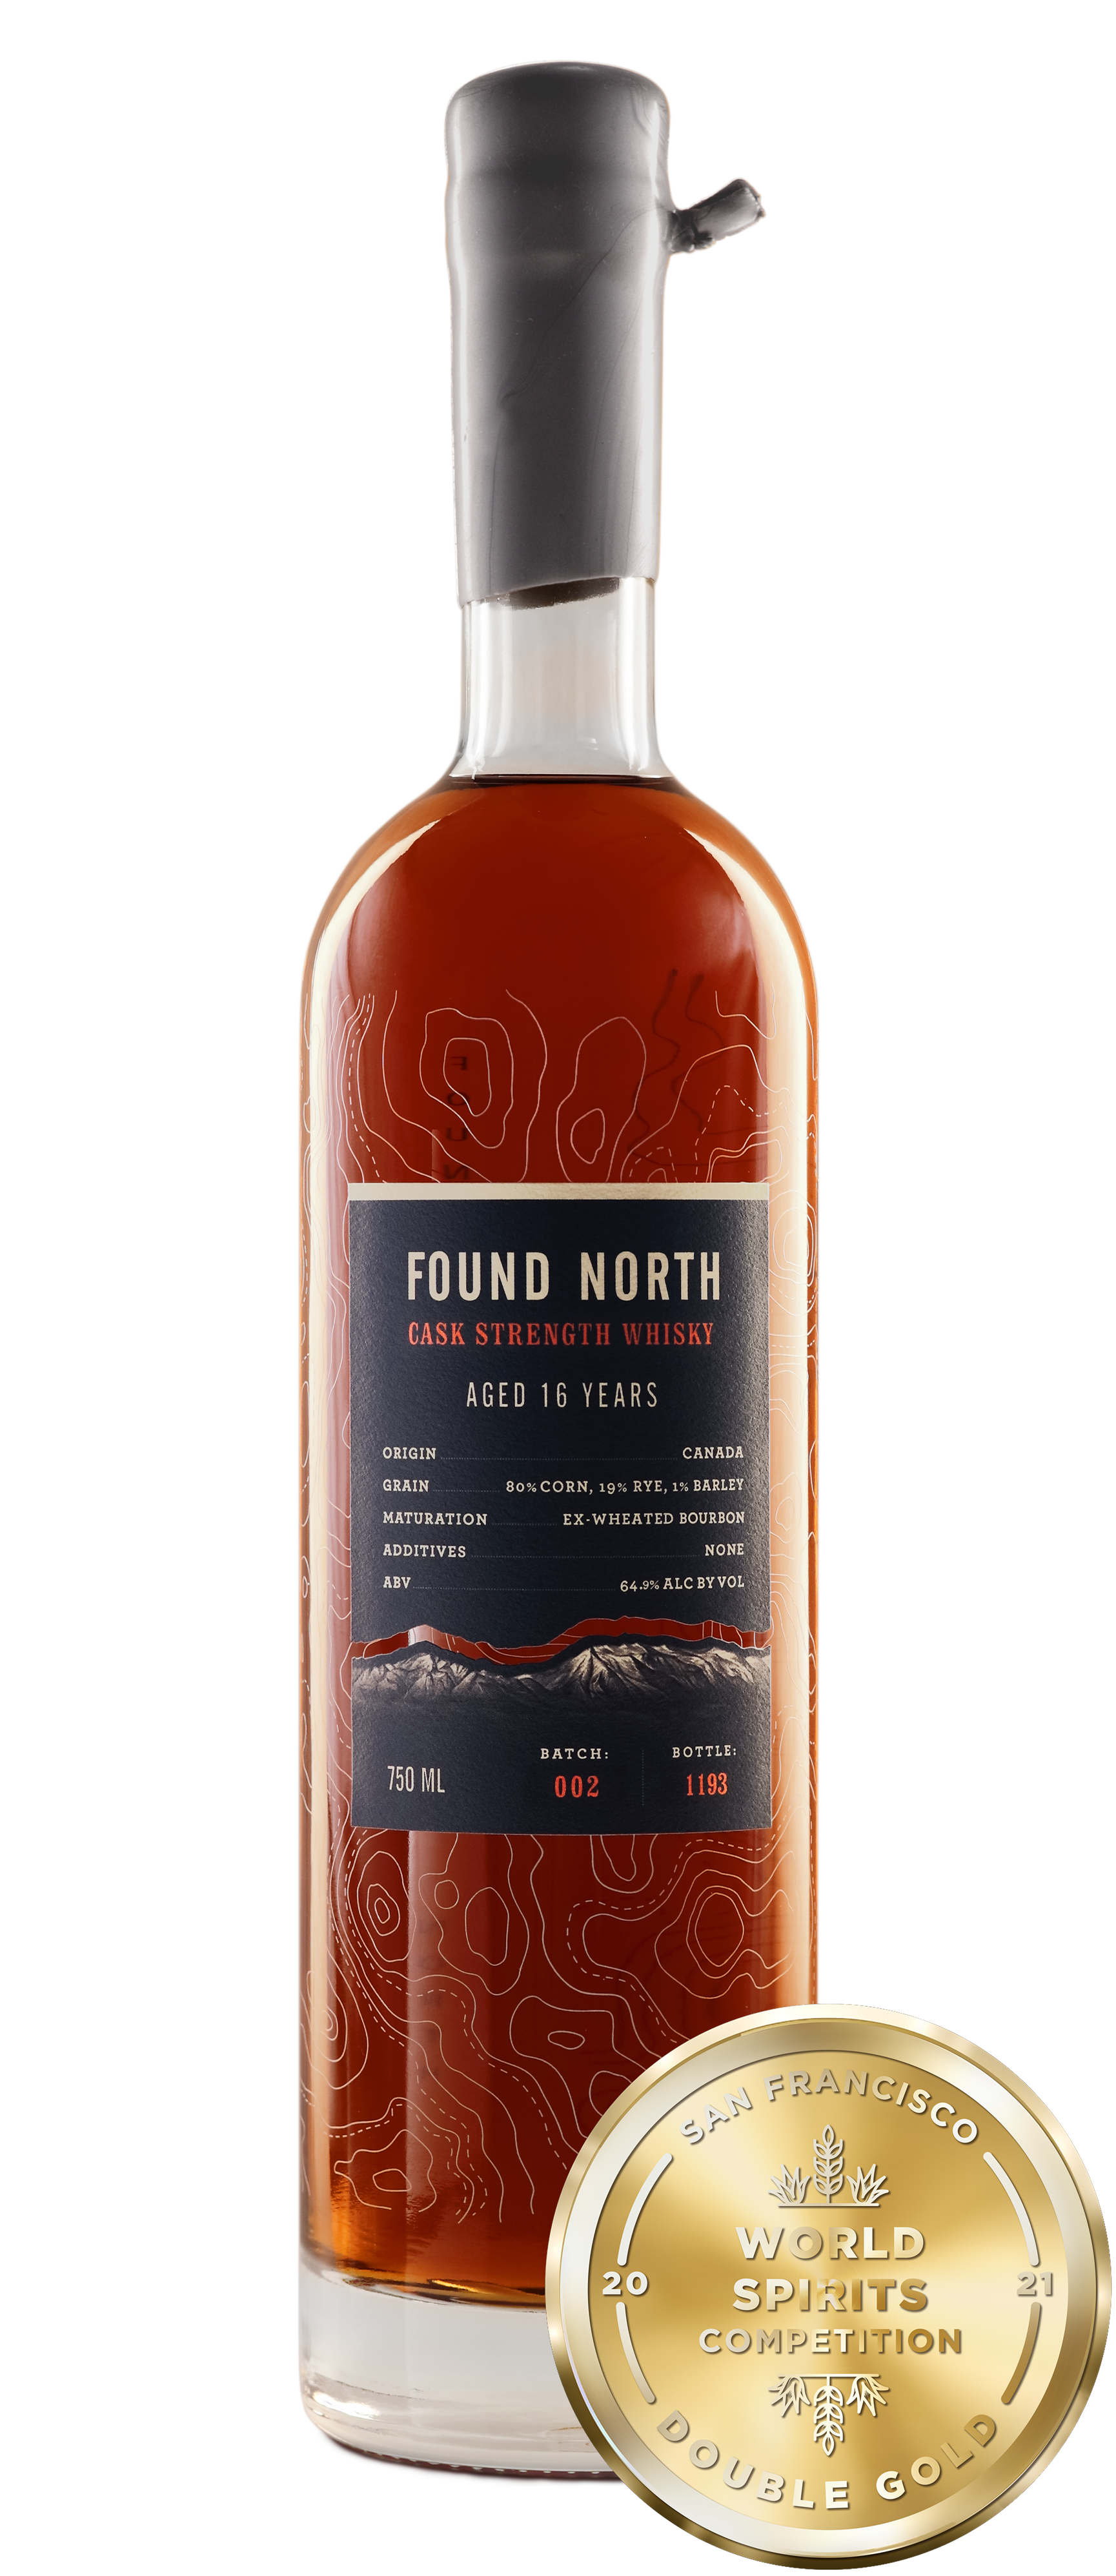 Image of Found North Batch 002 Cask Strength Whisky with San Francisco World Spirits Competition Double Gold Medal